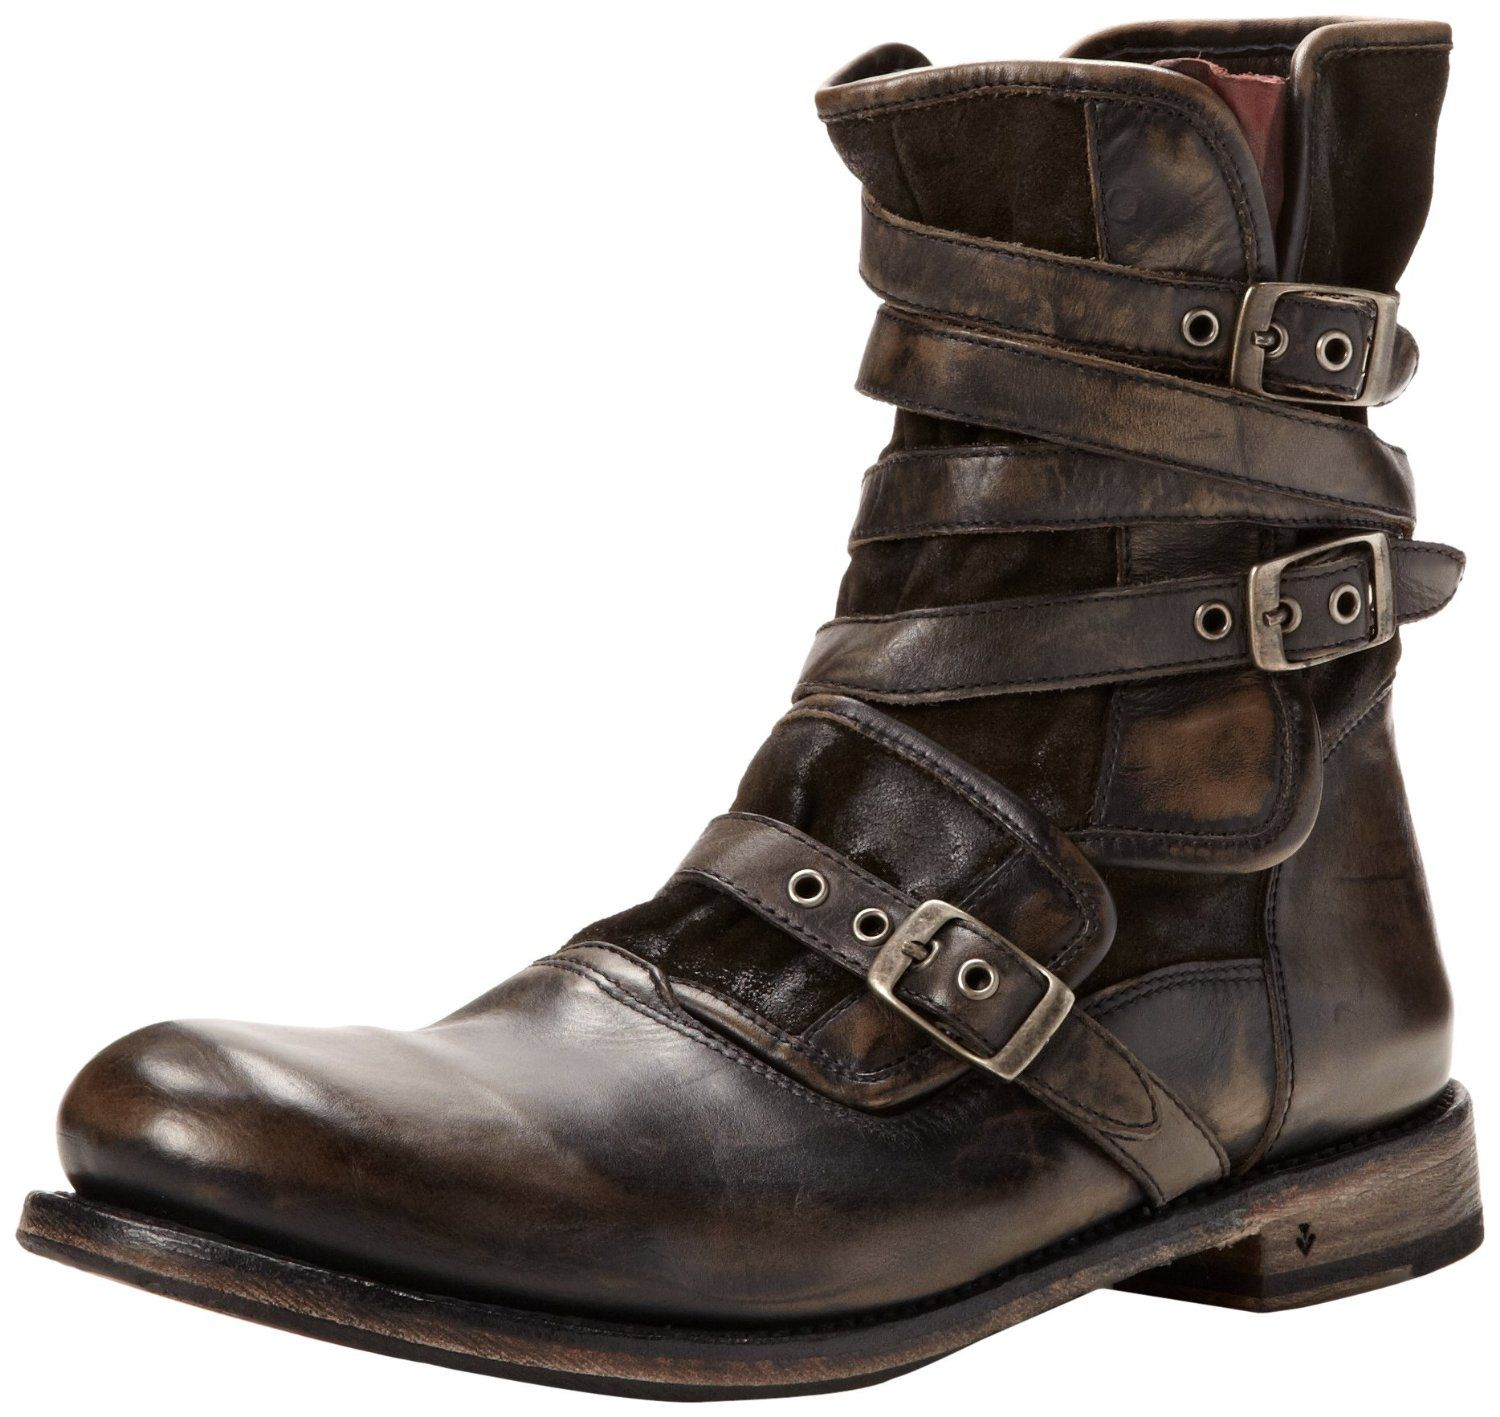 John Varvatos Men's Eg Triple Buckle Boot: Designed by designer John  Varvatos. This boot includes leather straps wrapped around the b.